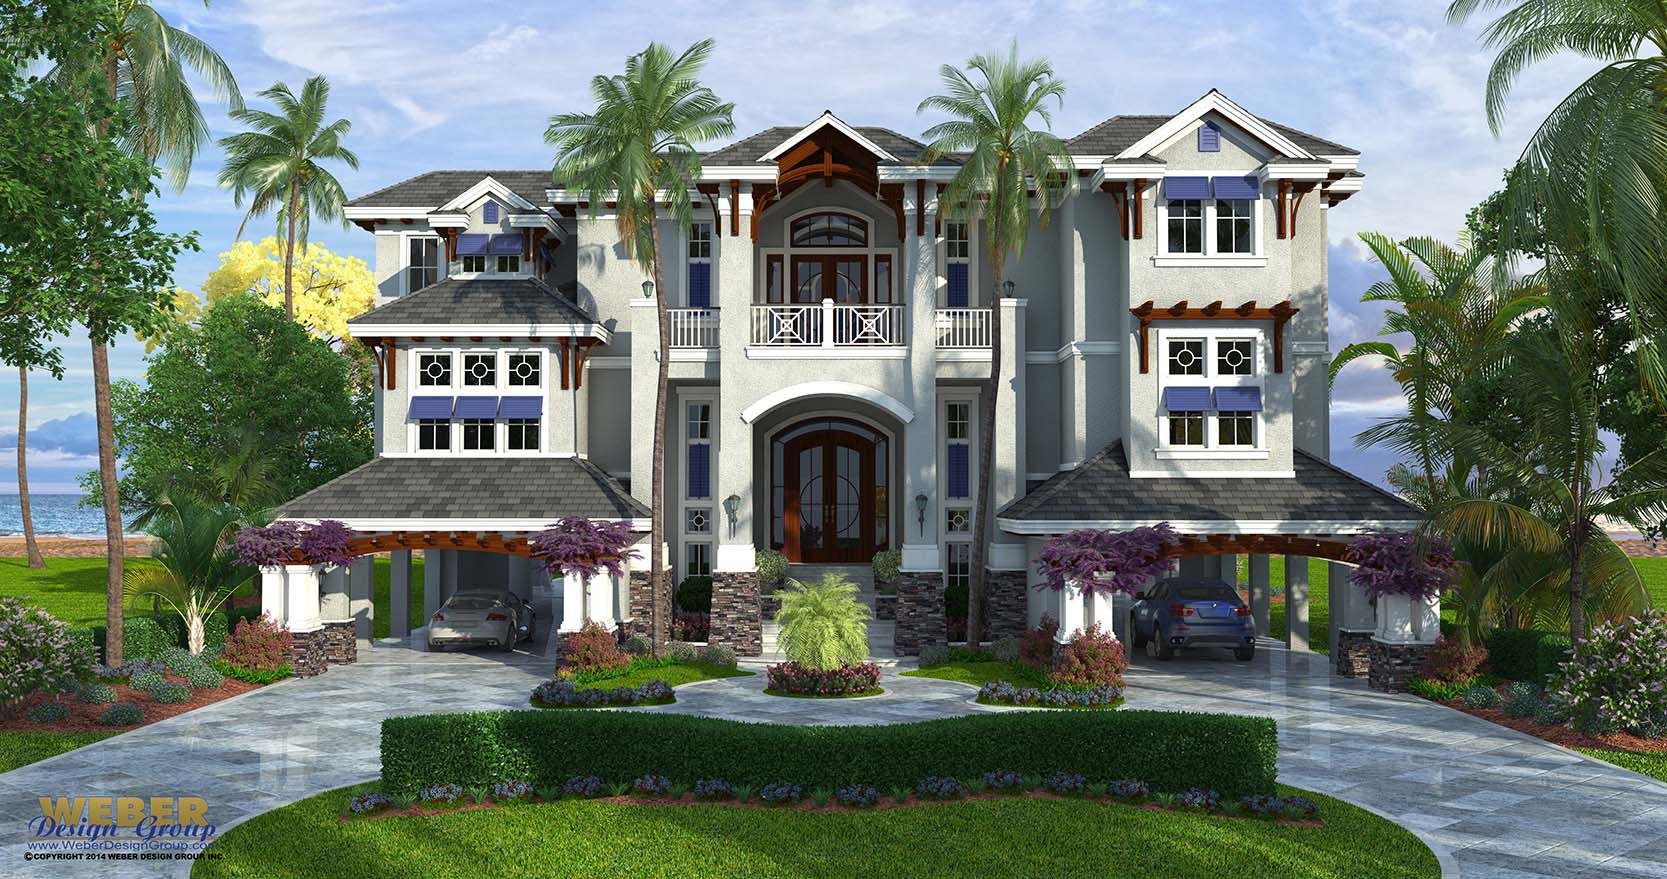 Coastal style house plan 3 story floor plan outdoor for 3 story beach house floor plans